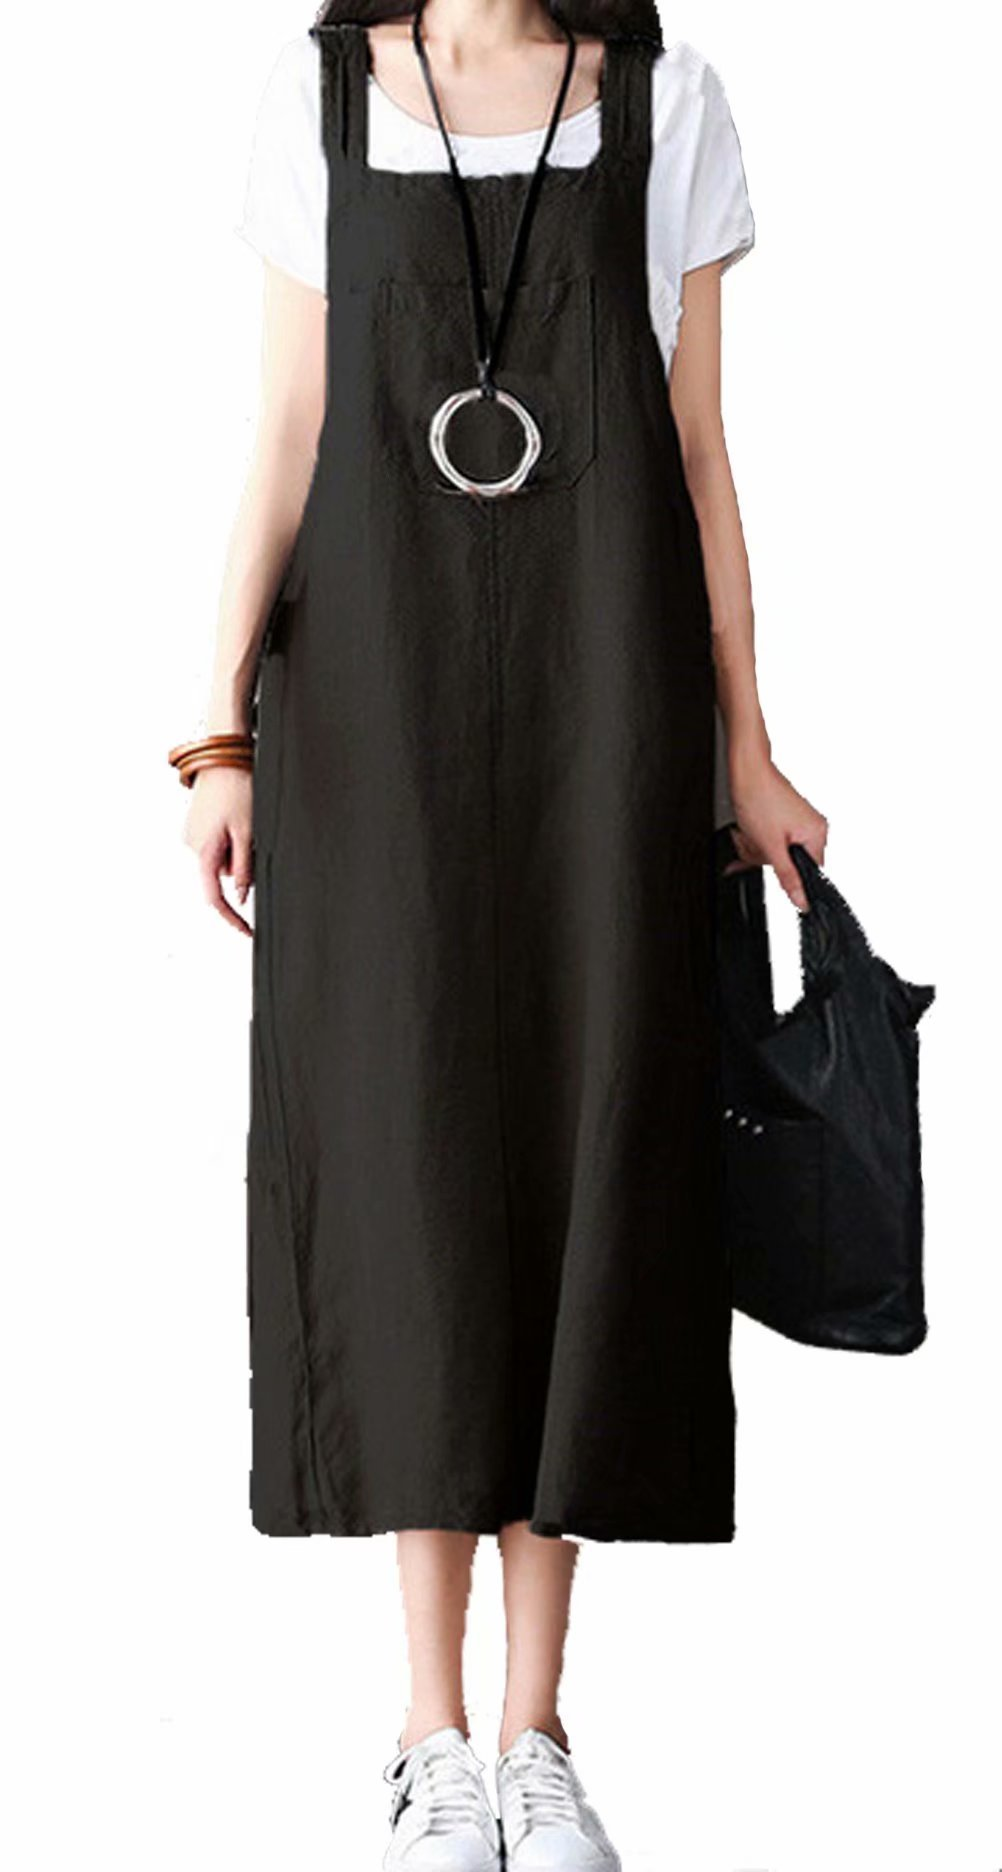 MNLYBABY Women Bib Overalls Sleeveless Dungarees Strappy Dress Casual Loose Baggy Sundress Size 2XL (Black)